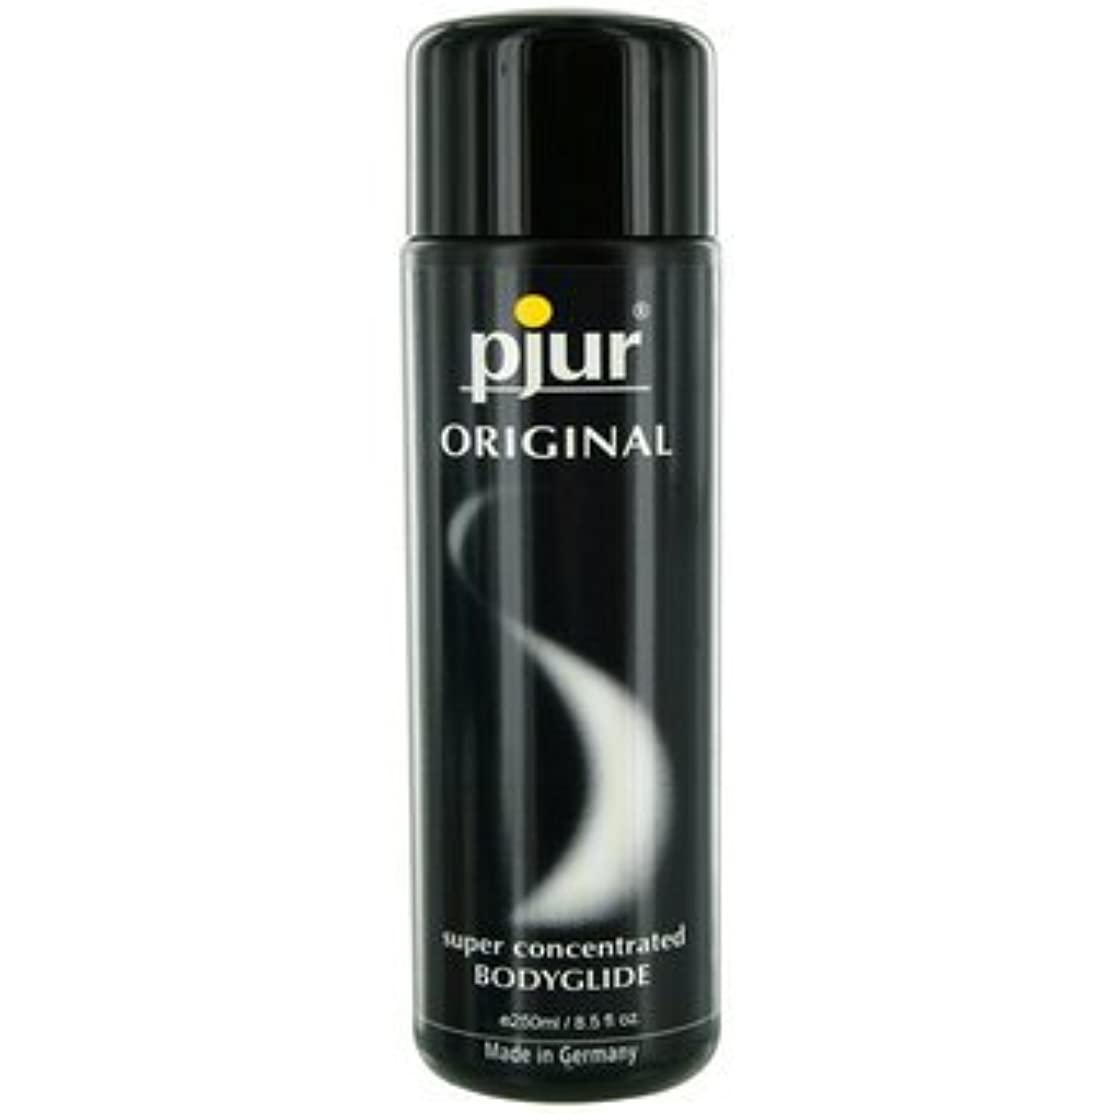 薬剤師忠実に富豪Pjur Original Body Glide Lubricant - 250ml